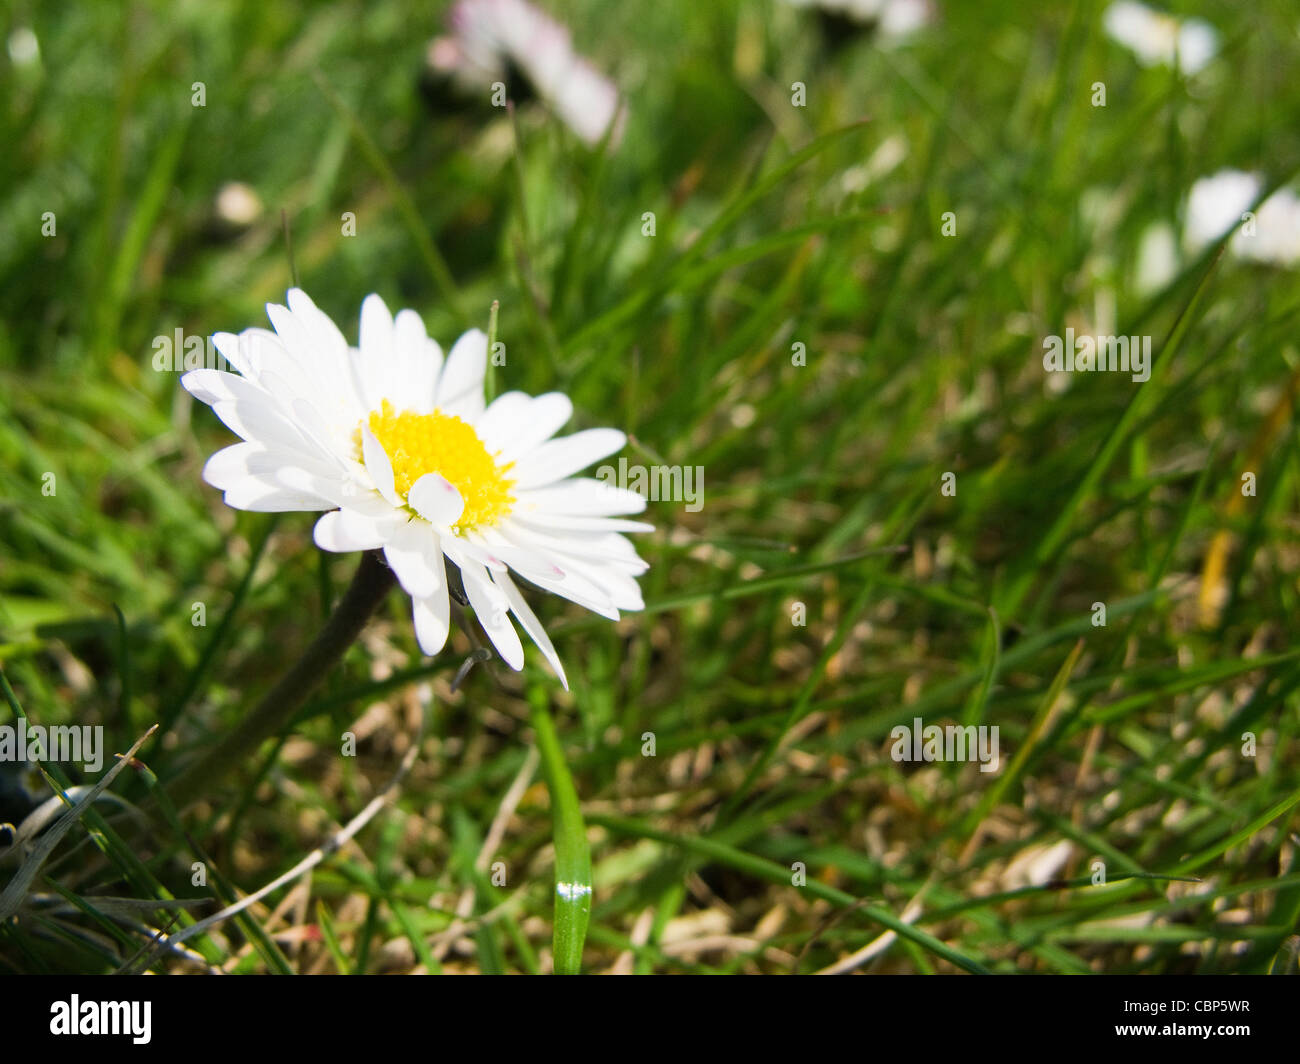 Closeup of a daisy flower, bellis perennis, on a meadow - Stock Image